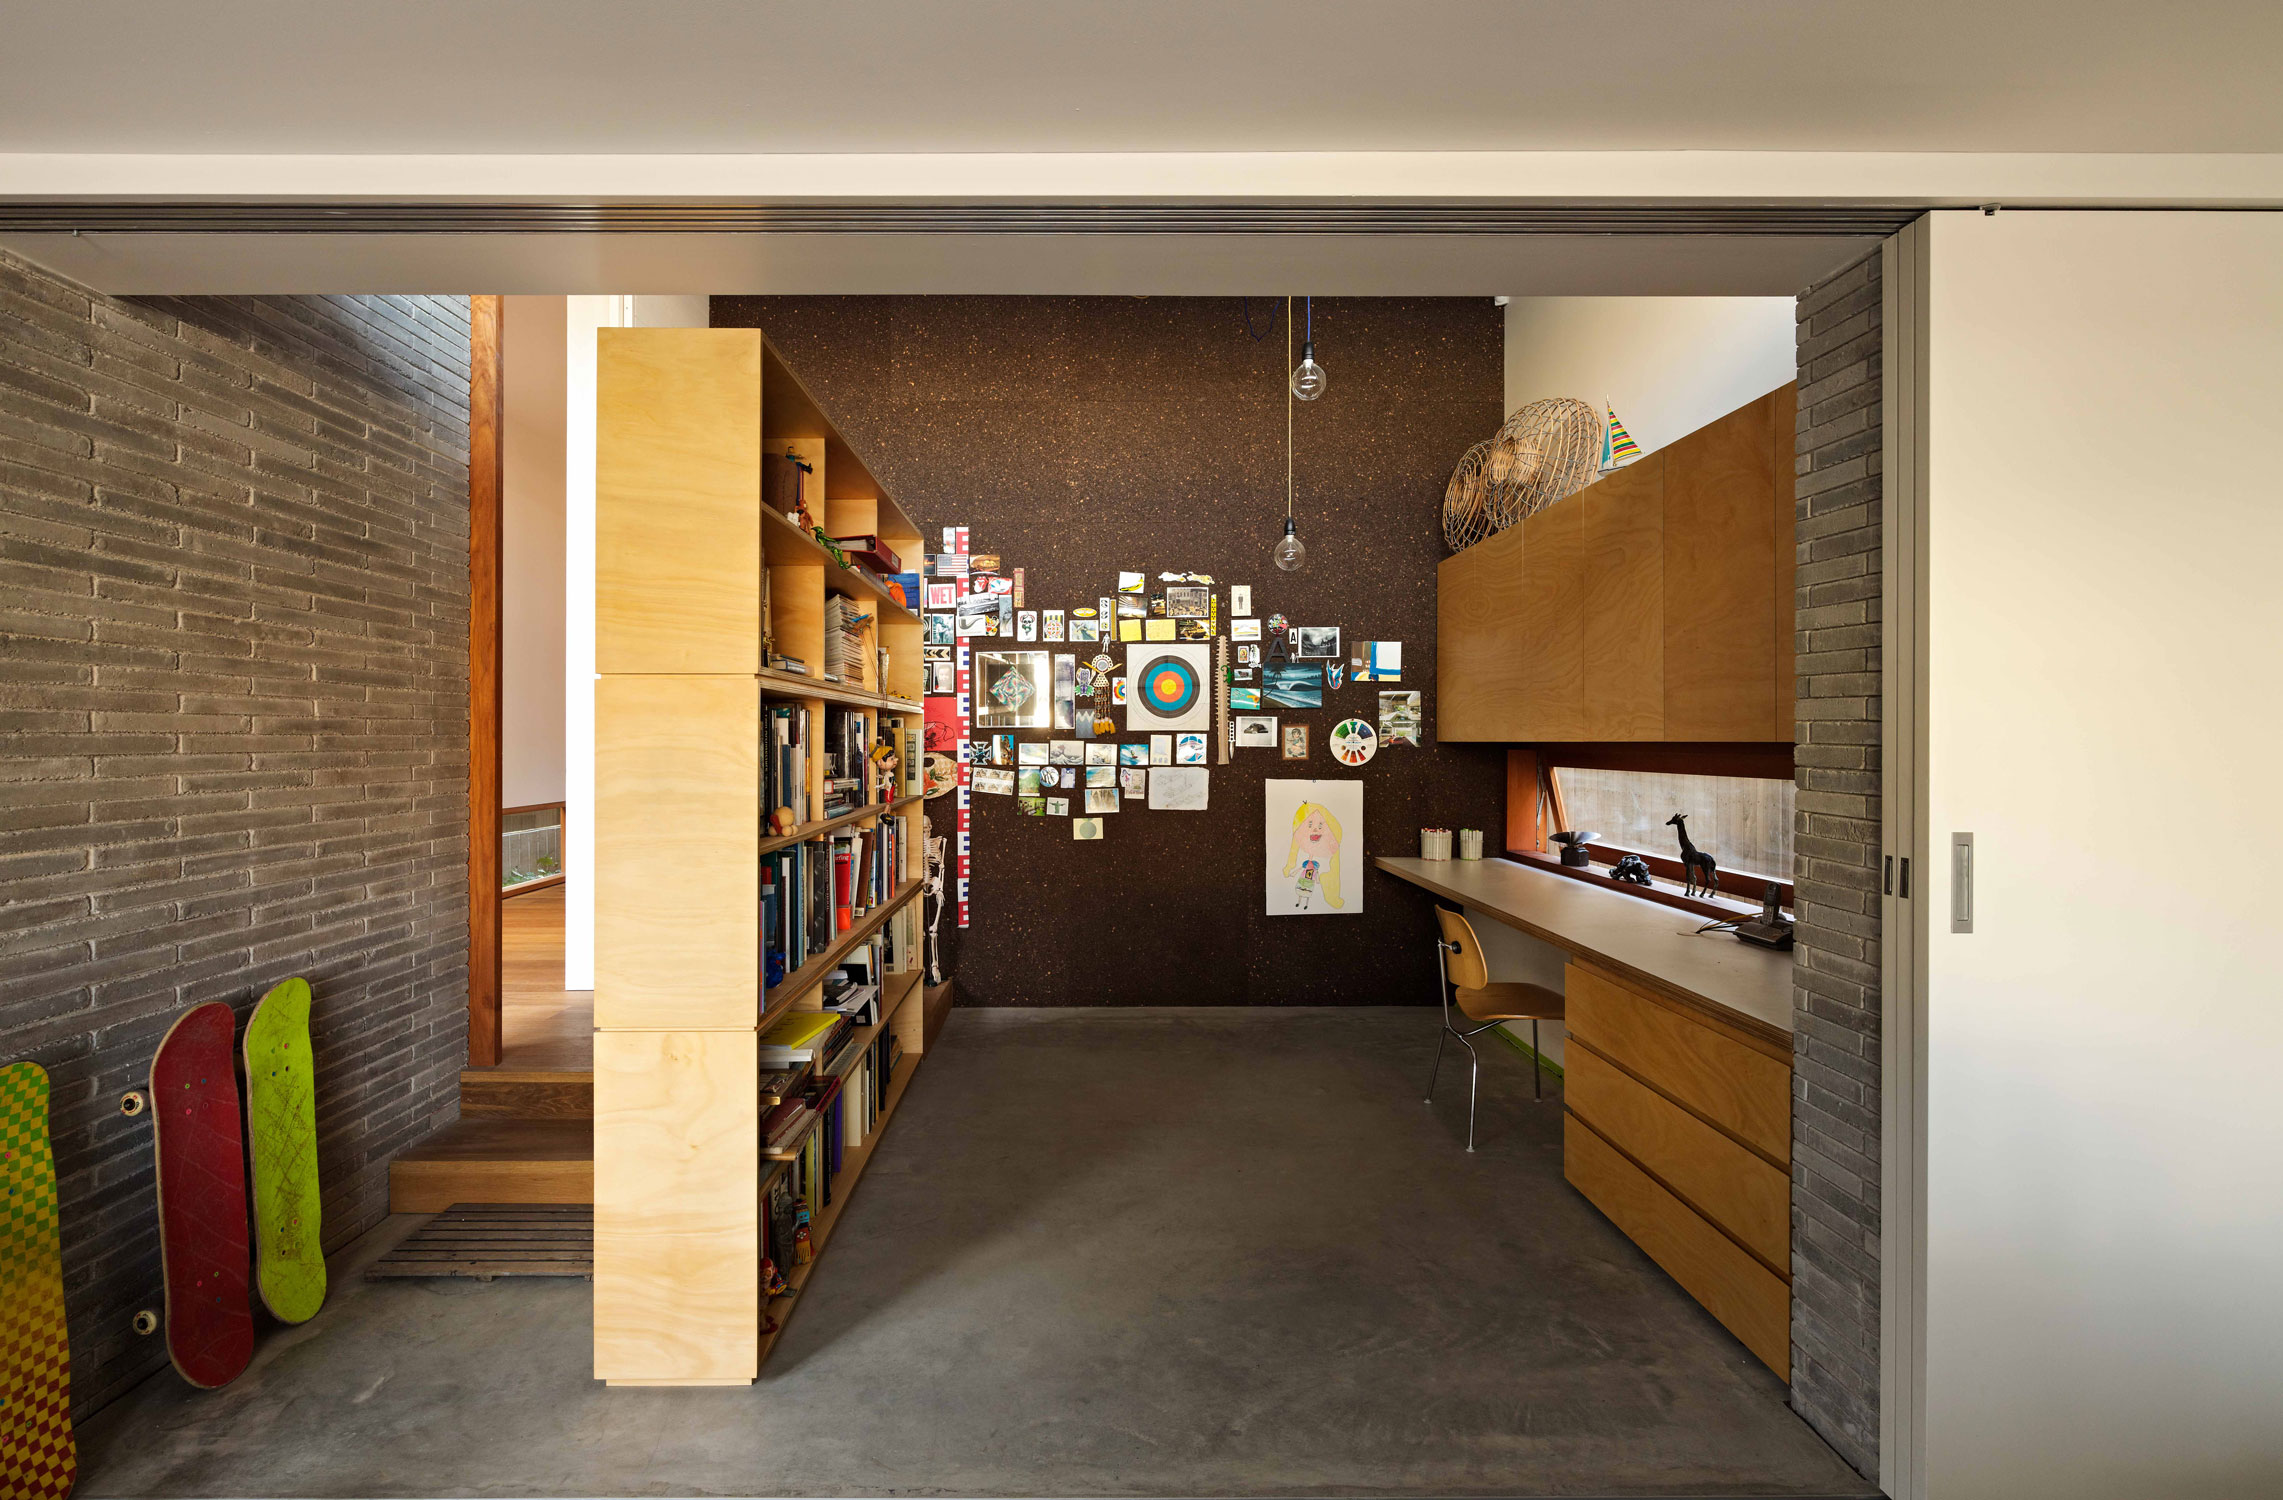 Carving Out Volumes And Replanning The Internal, Sees Andrew Burgess Architects Breathe New Life Into This Long Narrow Footprint.